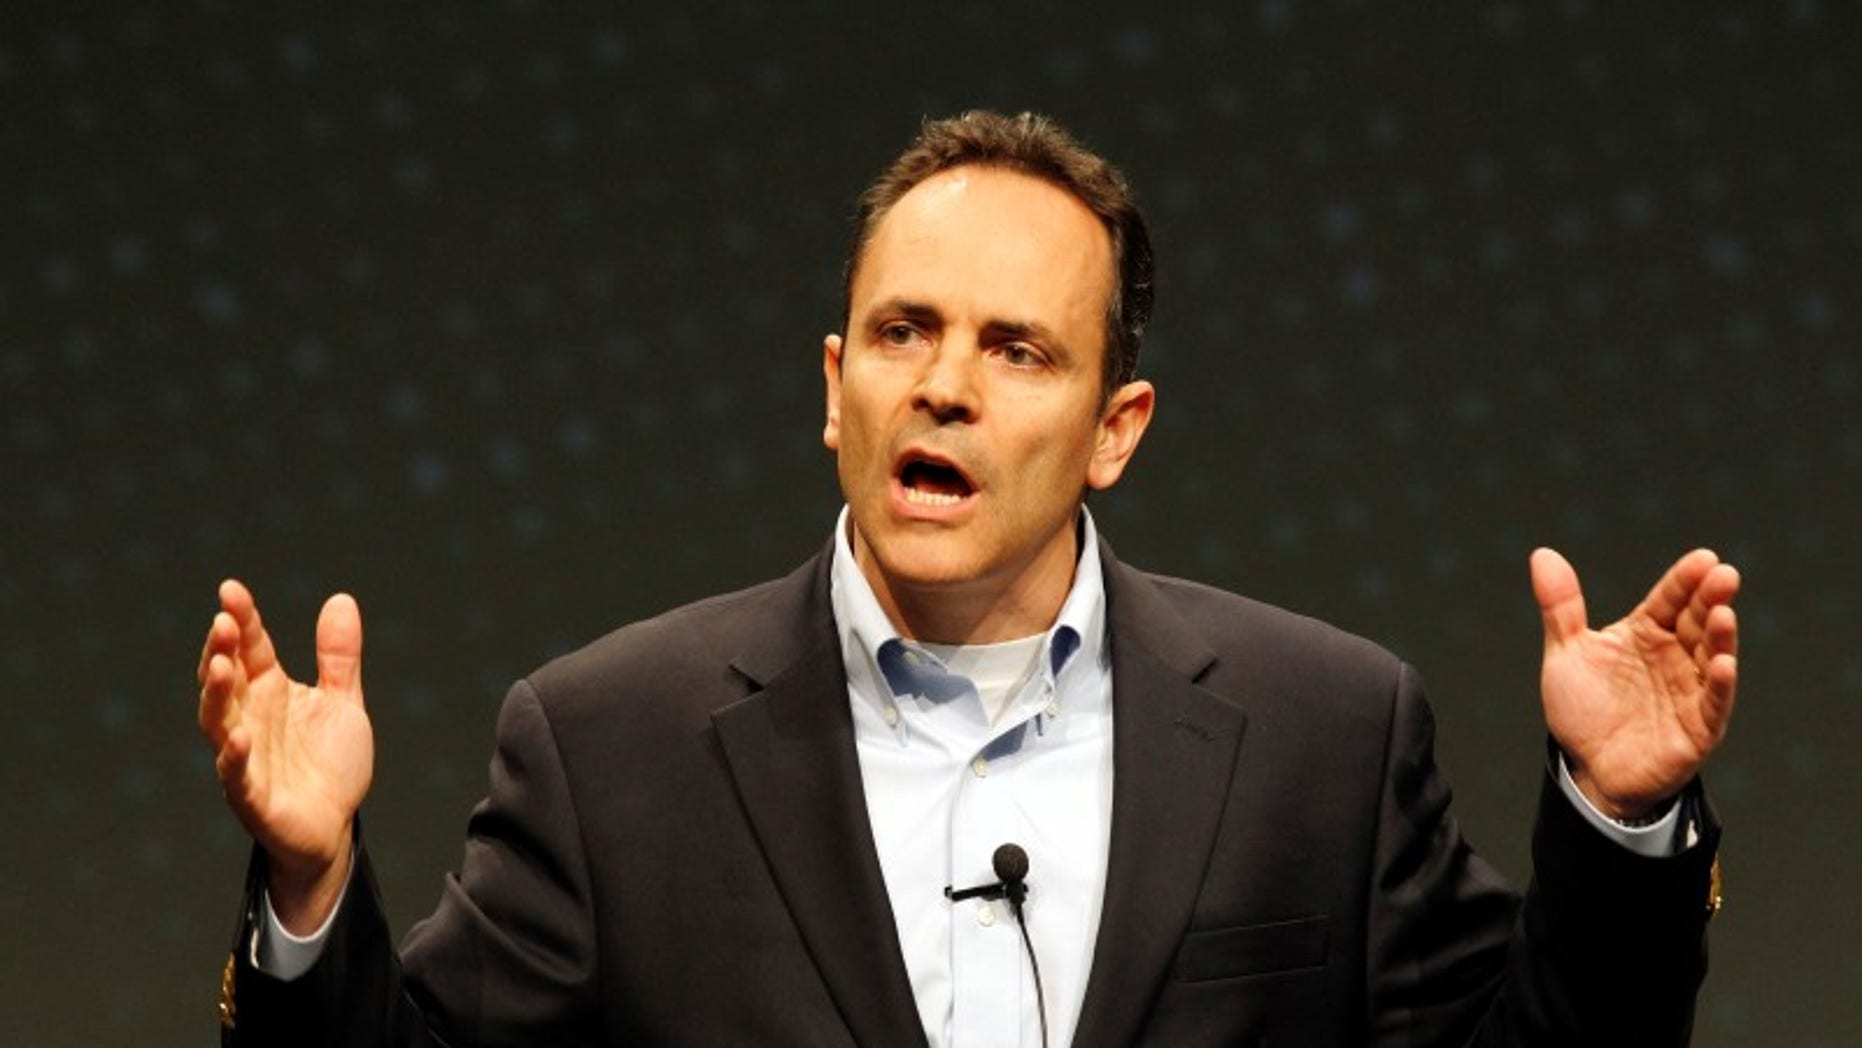 Kentucky Gov. Matt Bevin is shown delivering a speech in Louisville, April 5, 2014.